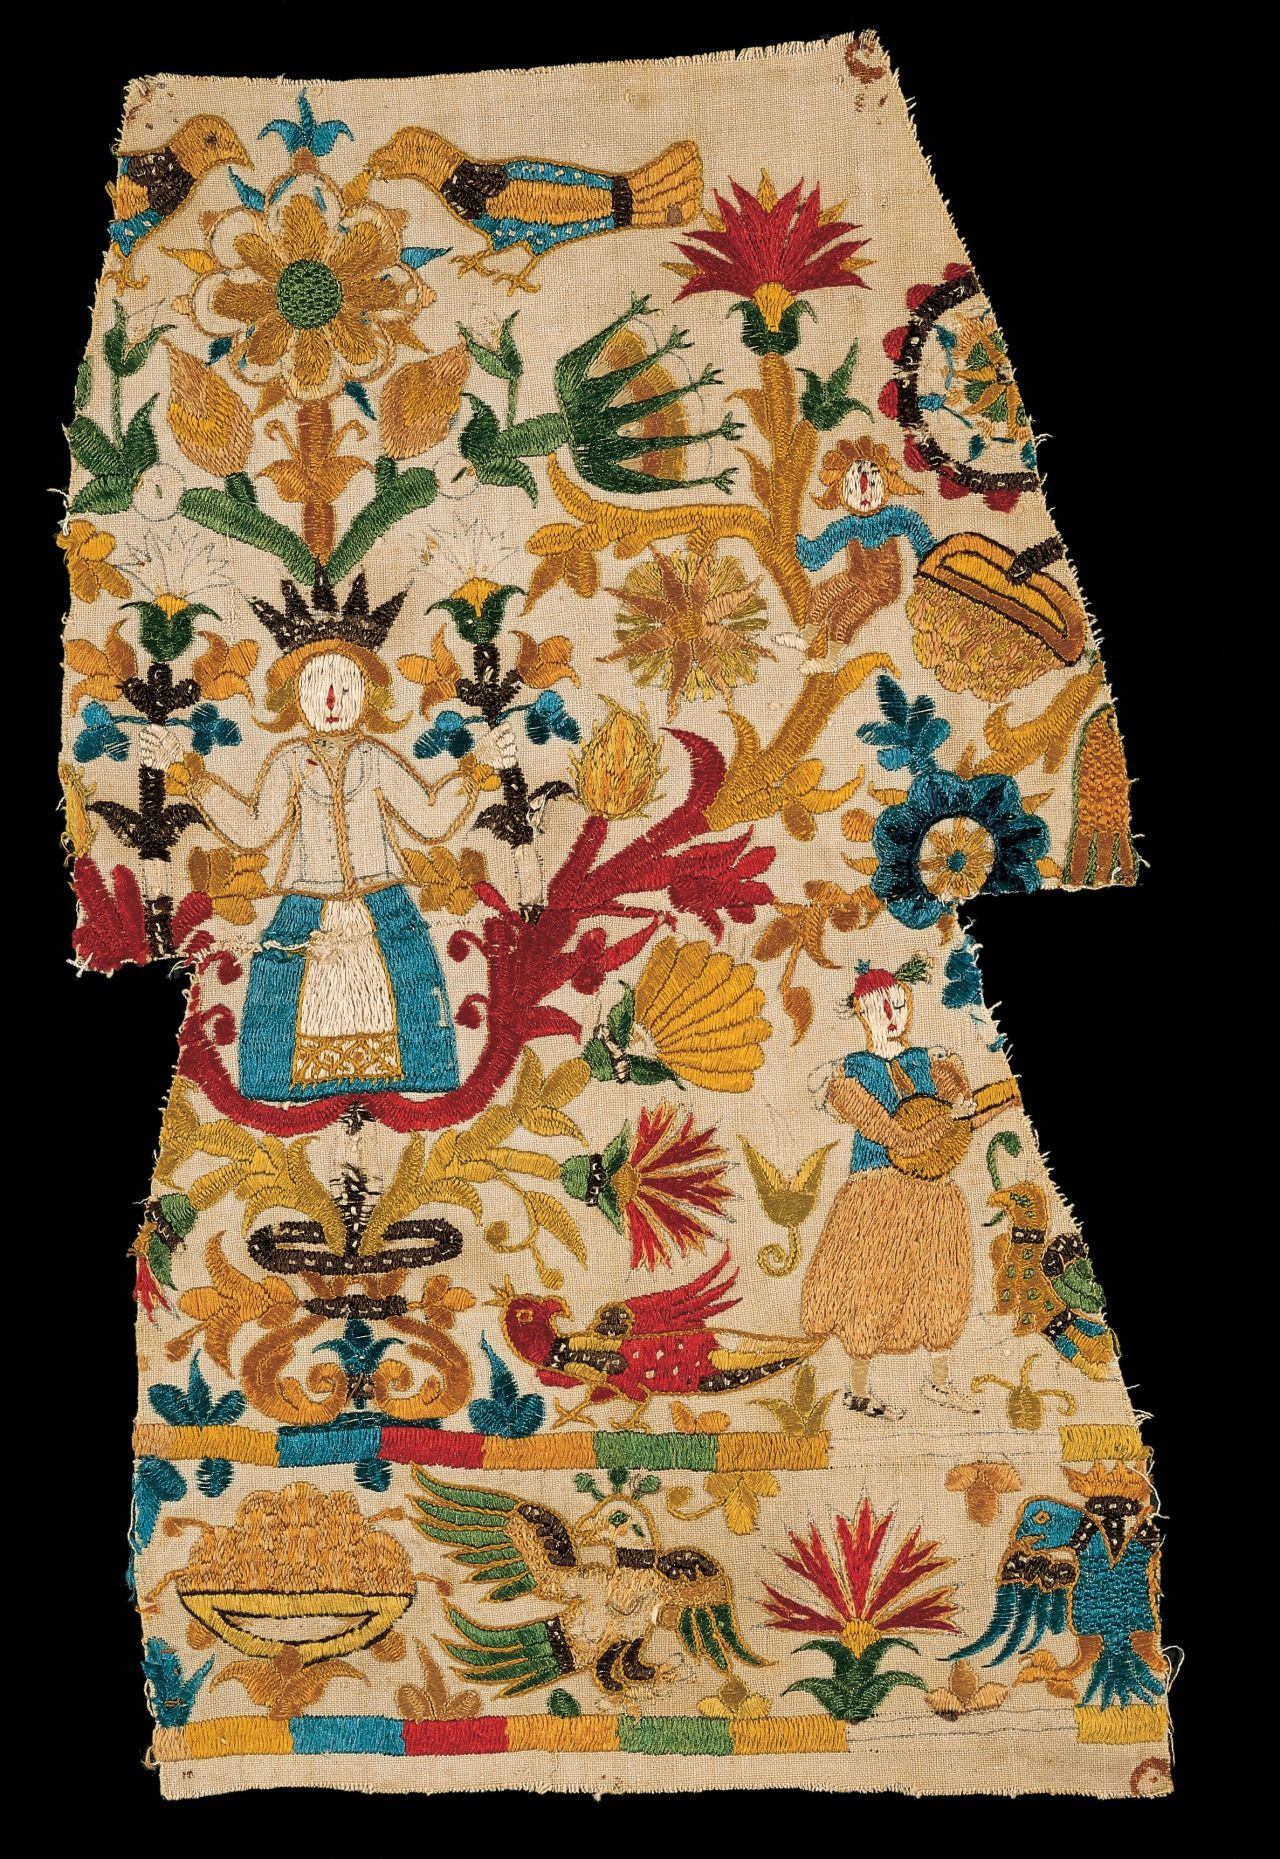 Part of embroidery depicting a woman on a floral ground and a